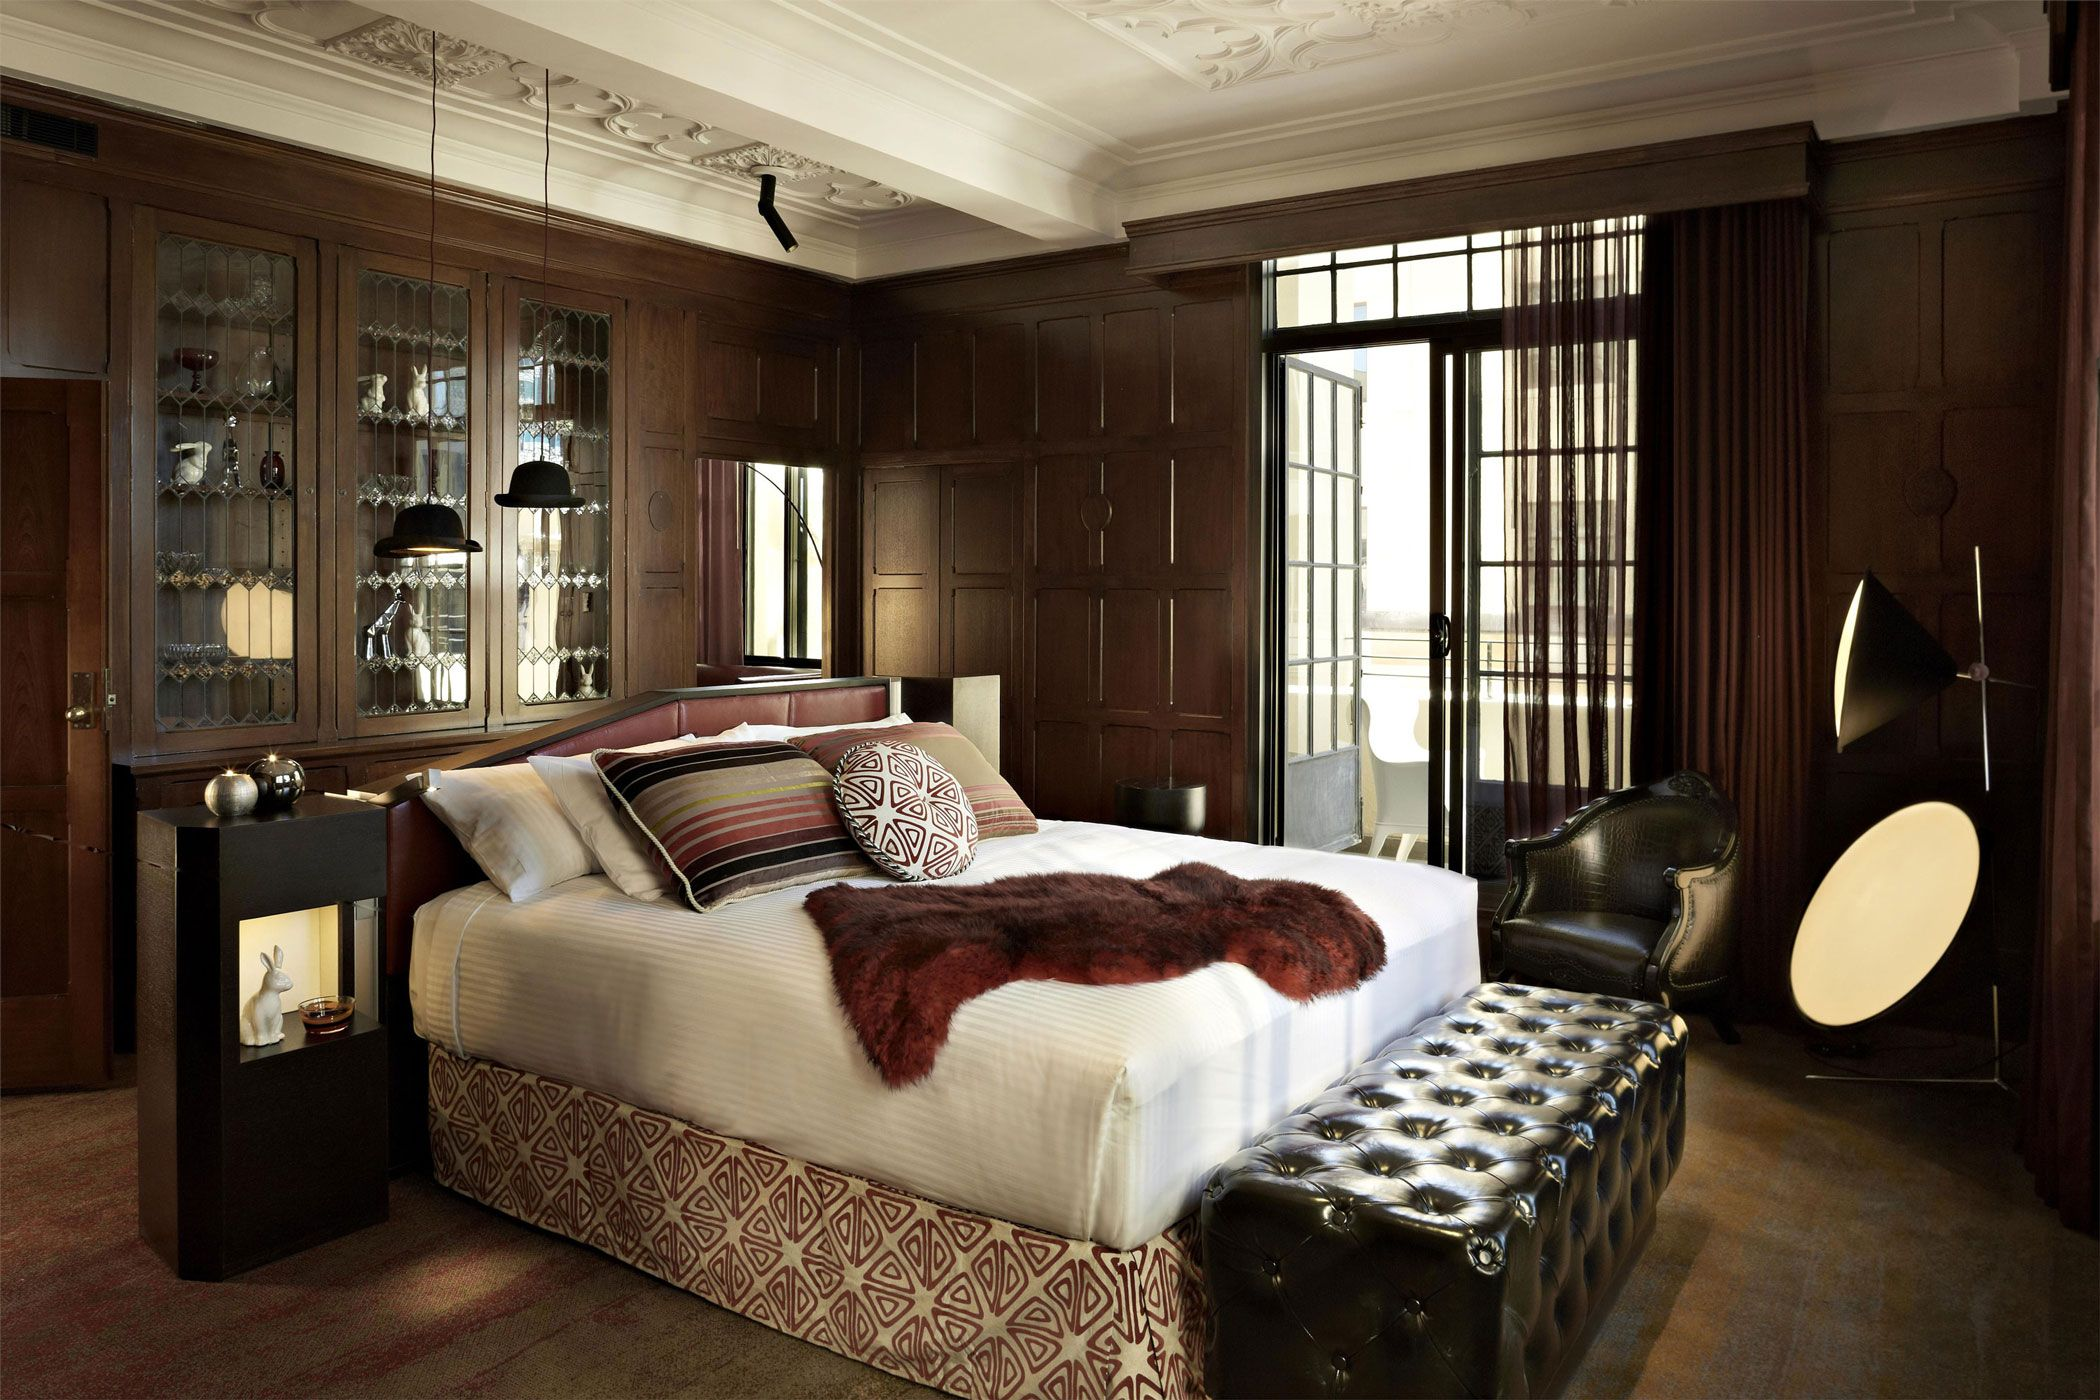 Hotels & Resorts, Luxurious Bedroom In Brown Theme Completed With White Bed  Red Blanket And